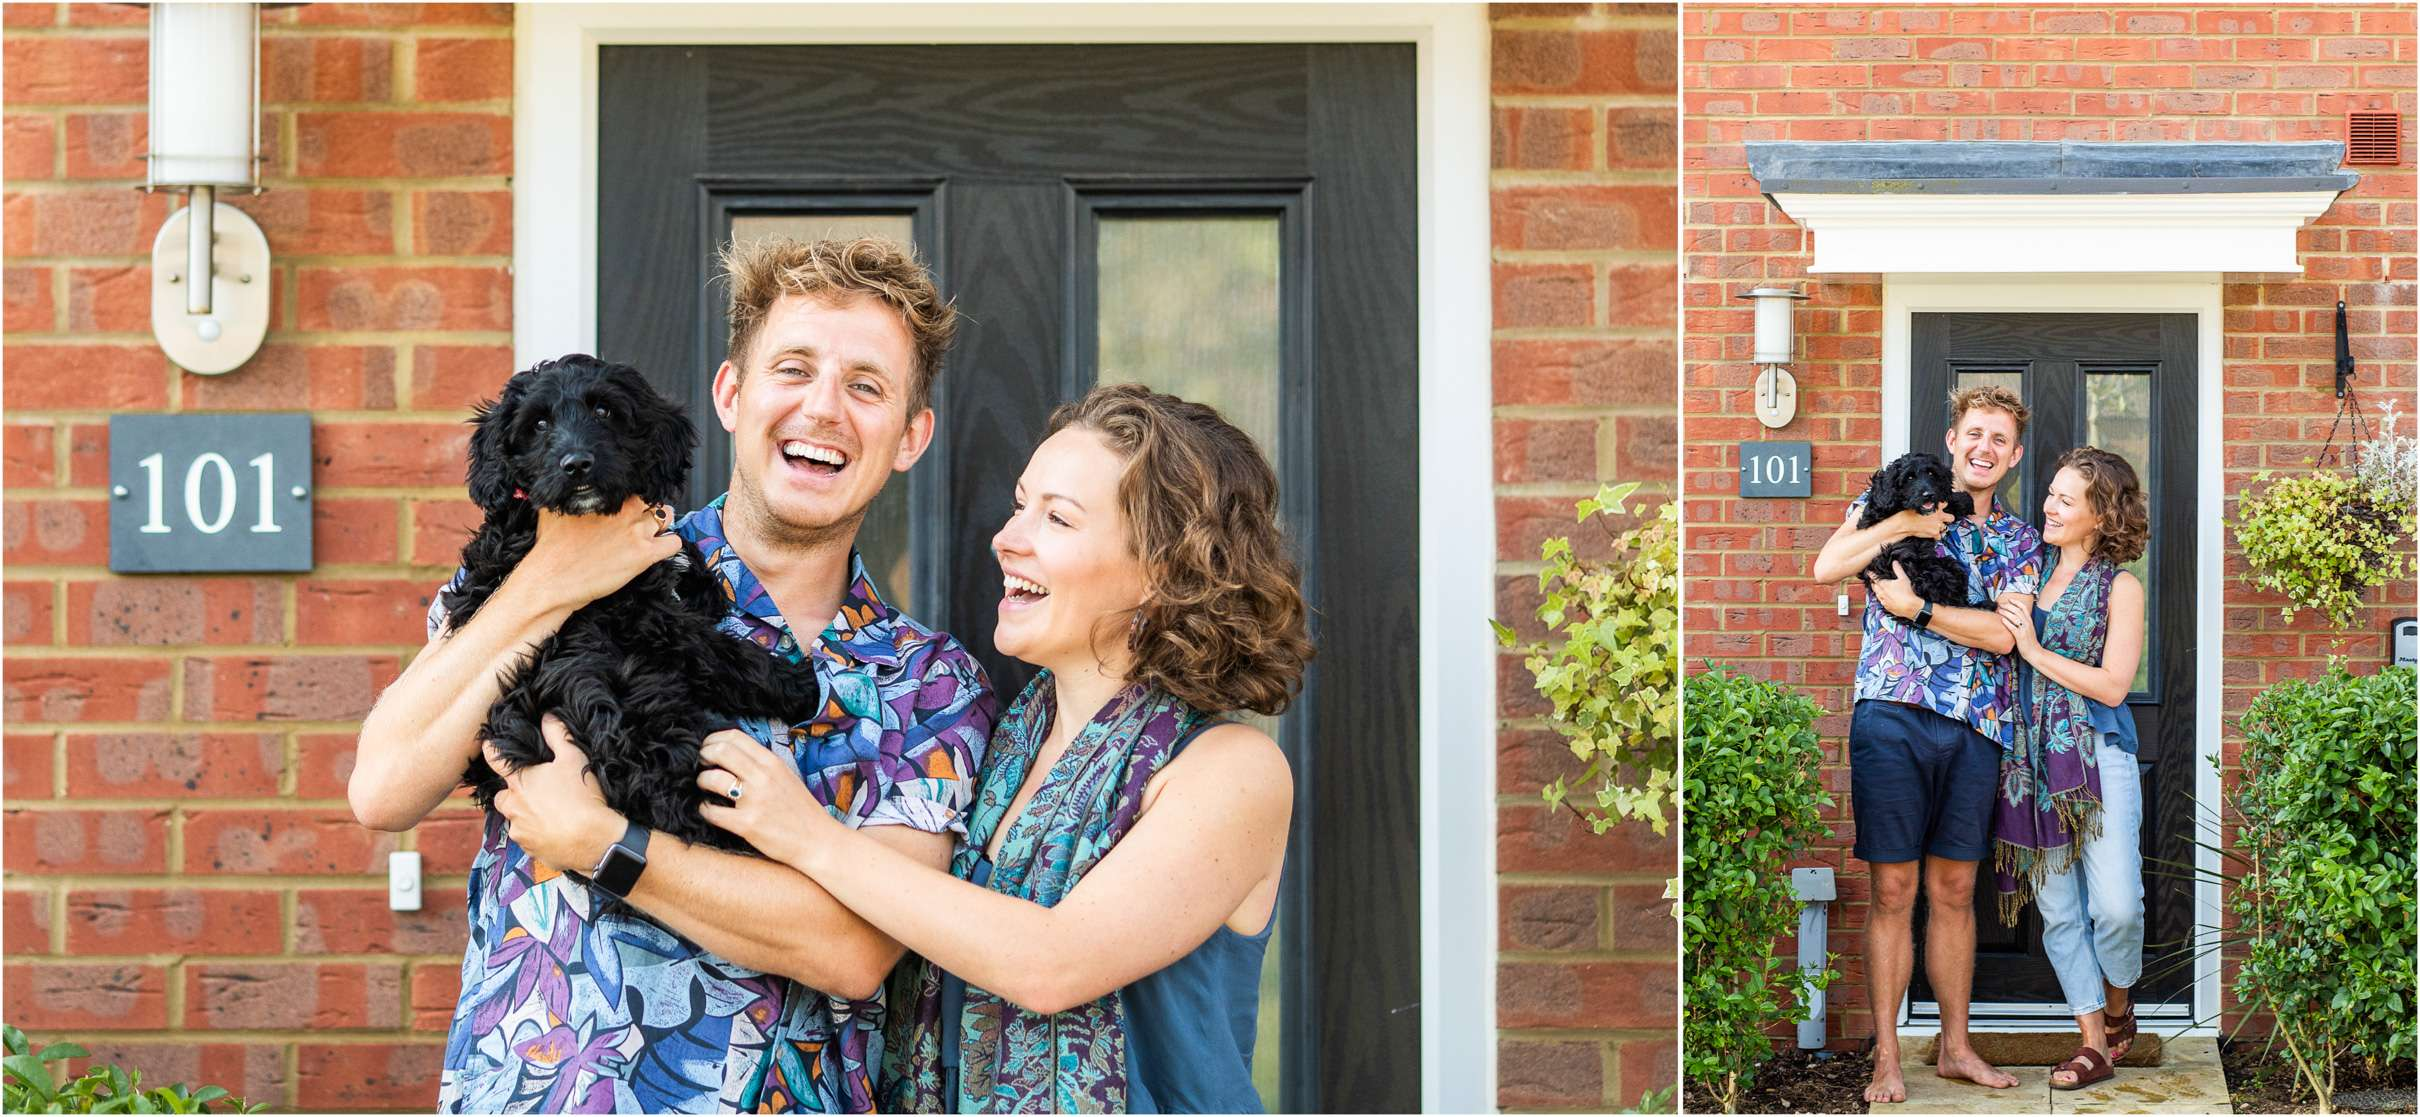 A doorstep family portrait photo in chichester